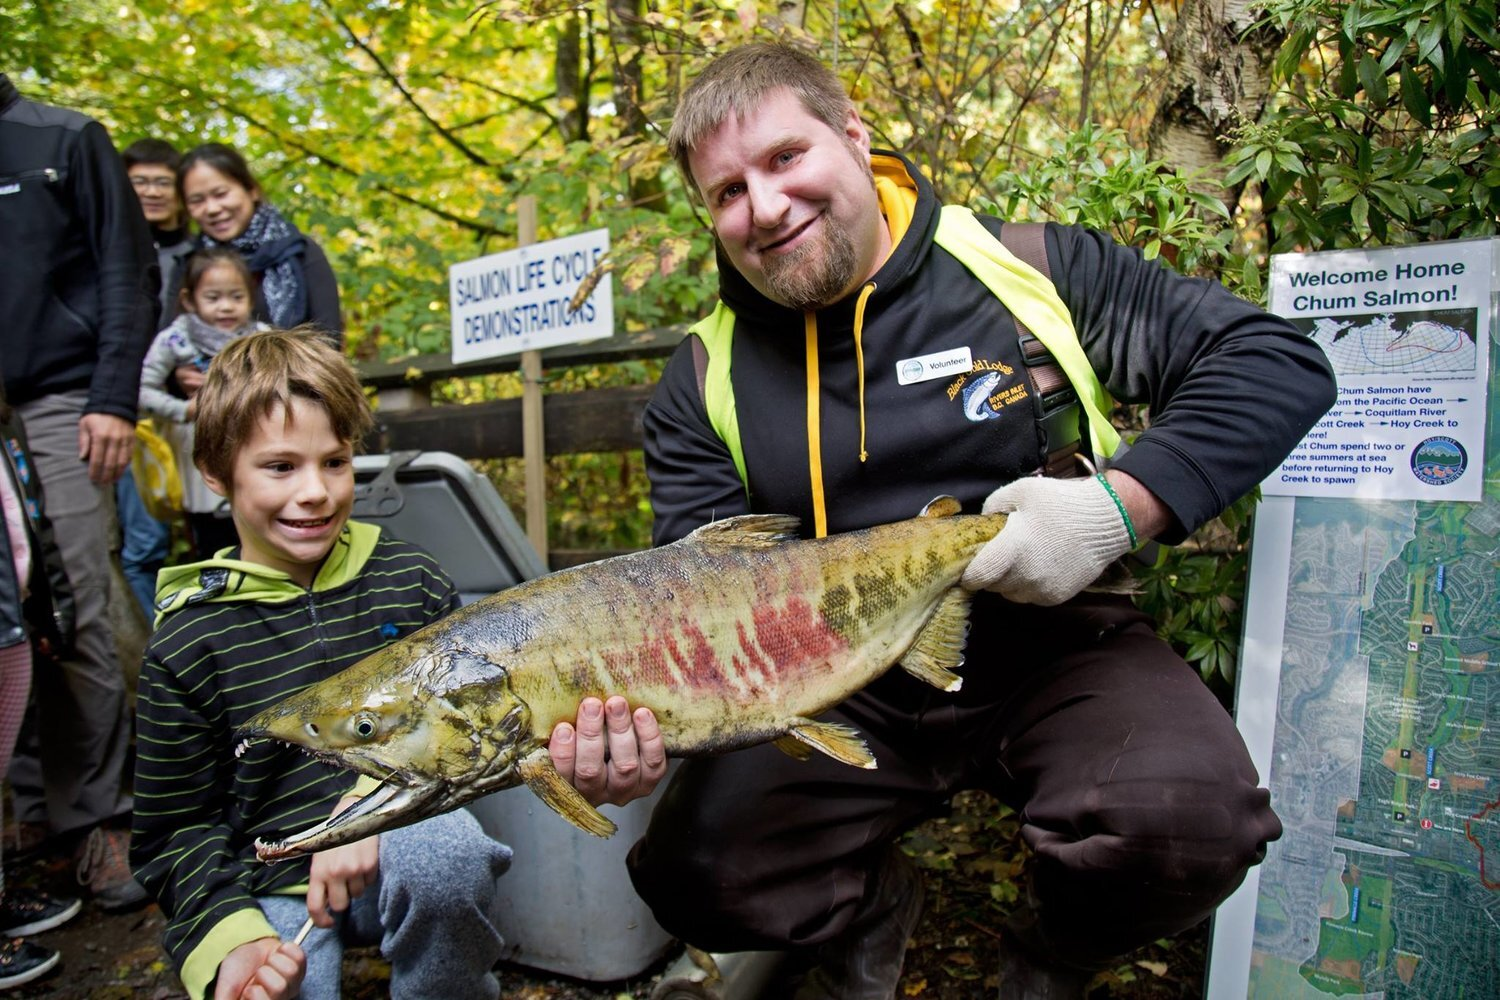 AJ of the Hoy-Scott Watershed Society holds up a chum salmon during Salmon Come Home (Photo: City of Coquitlam)